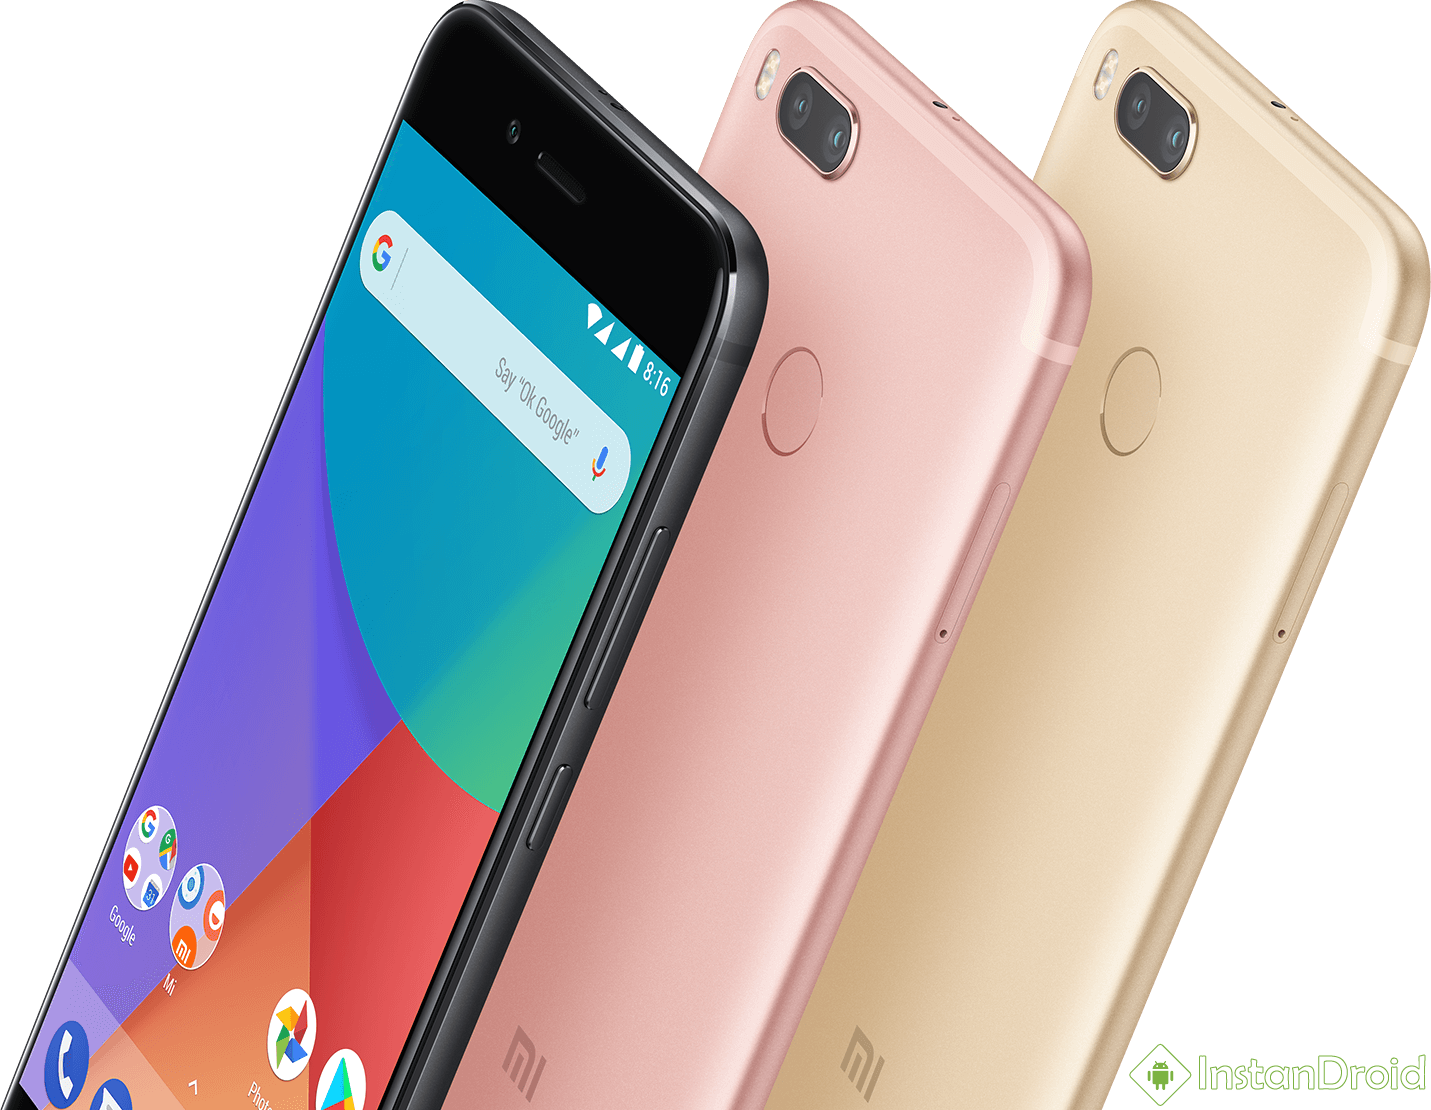 XIAOMI MI A1 Kernal Source Finally Released